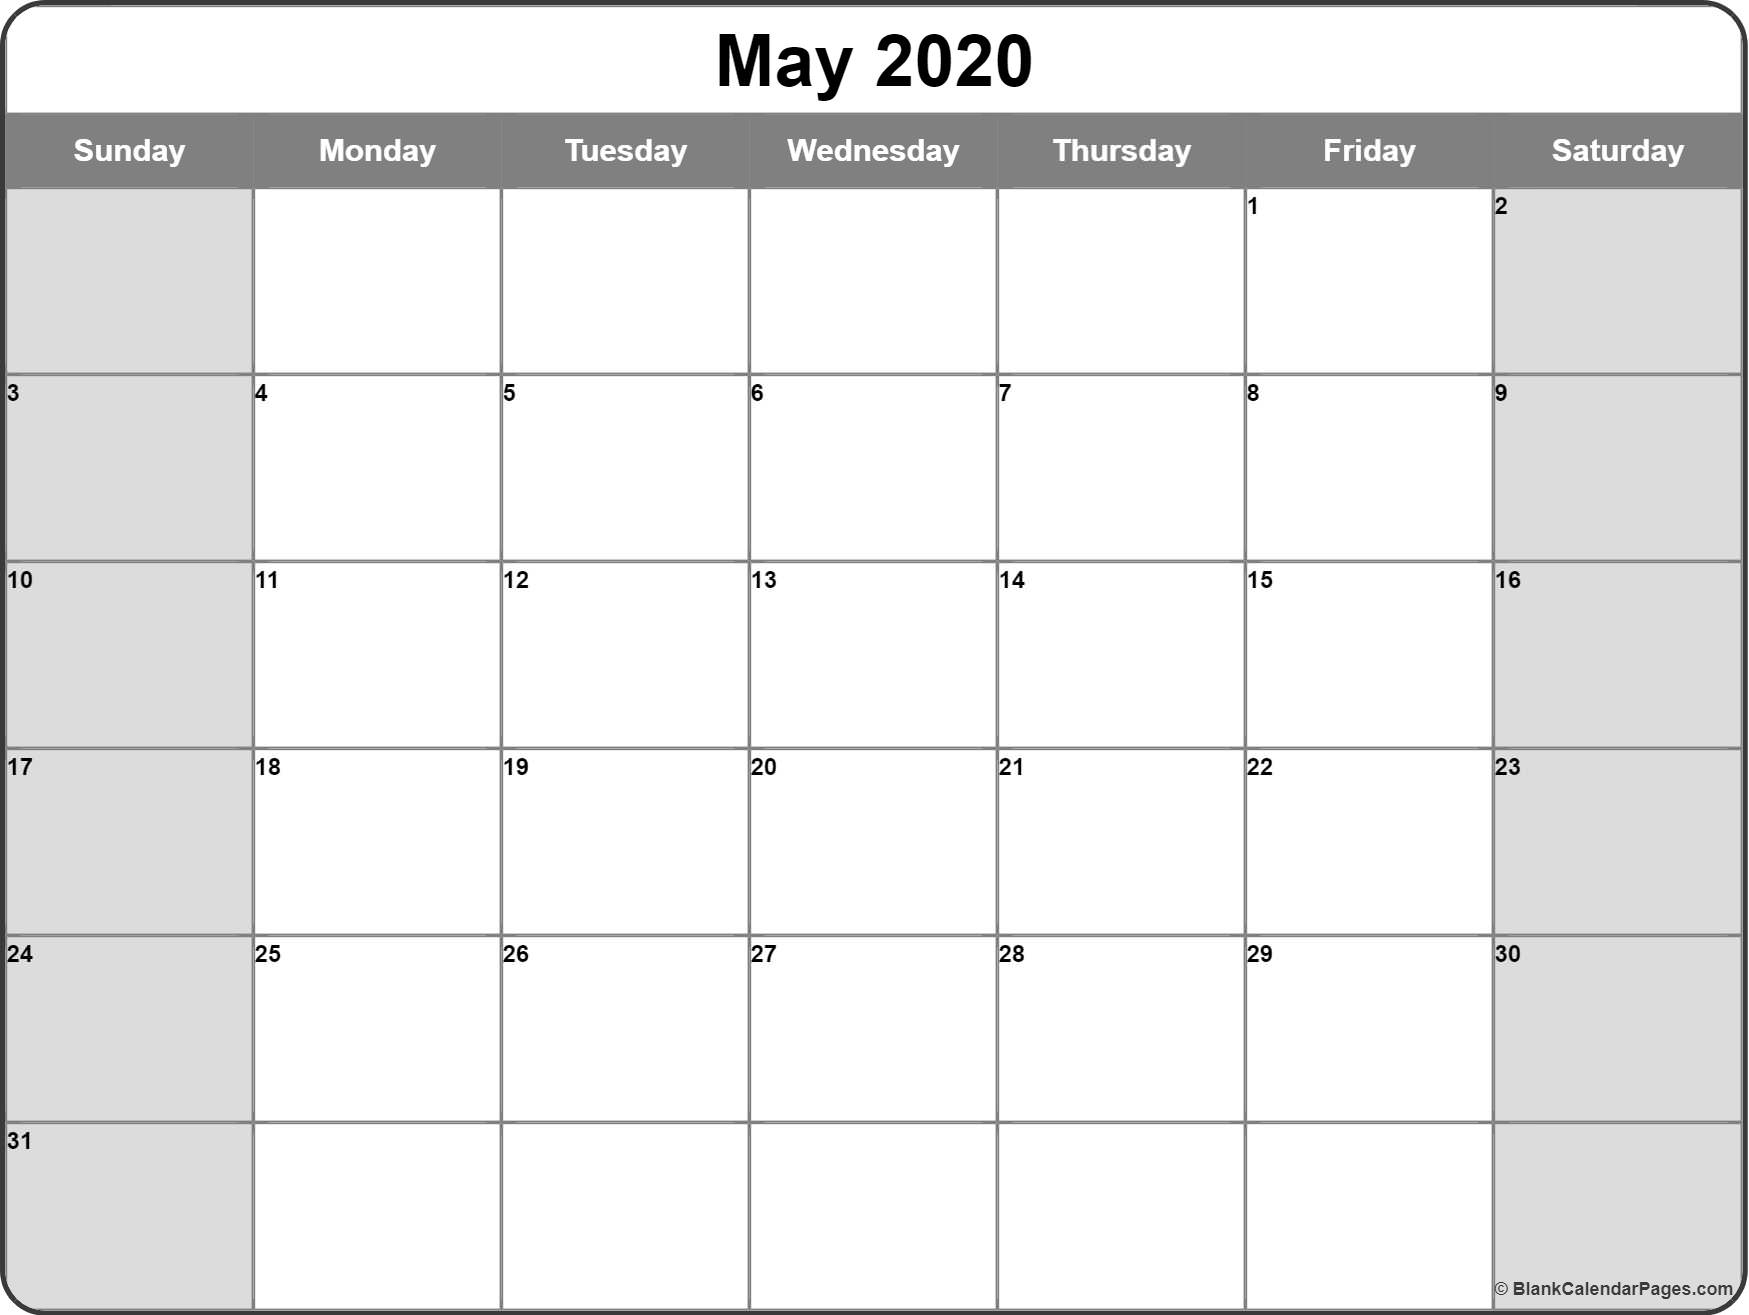 May 2020 Calendar | Free Printable Monthly Calendars throughout Monthly Fill In Calendar 2020